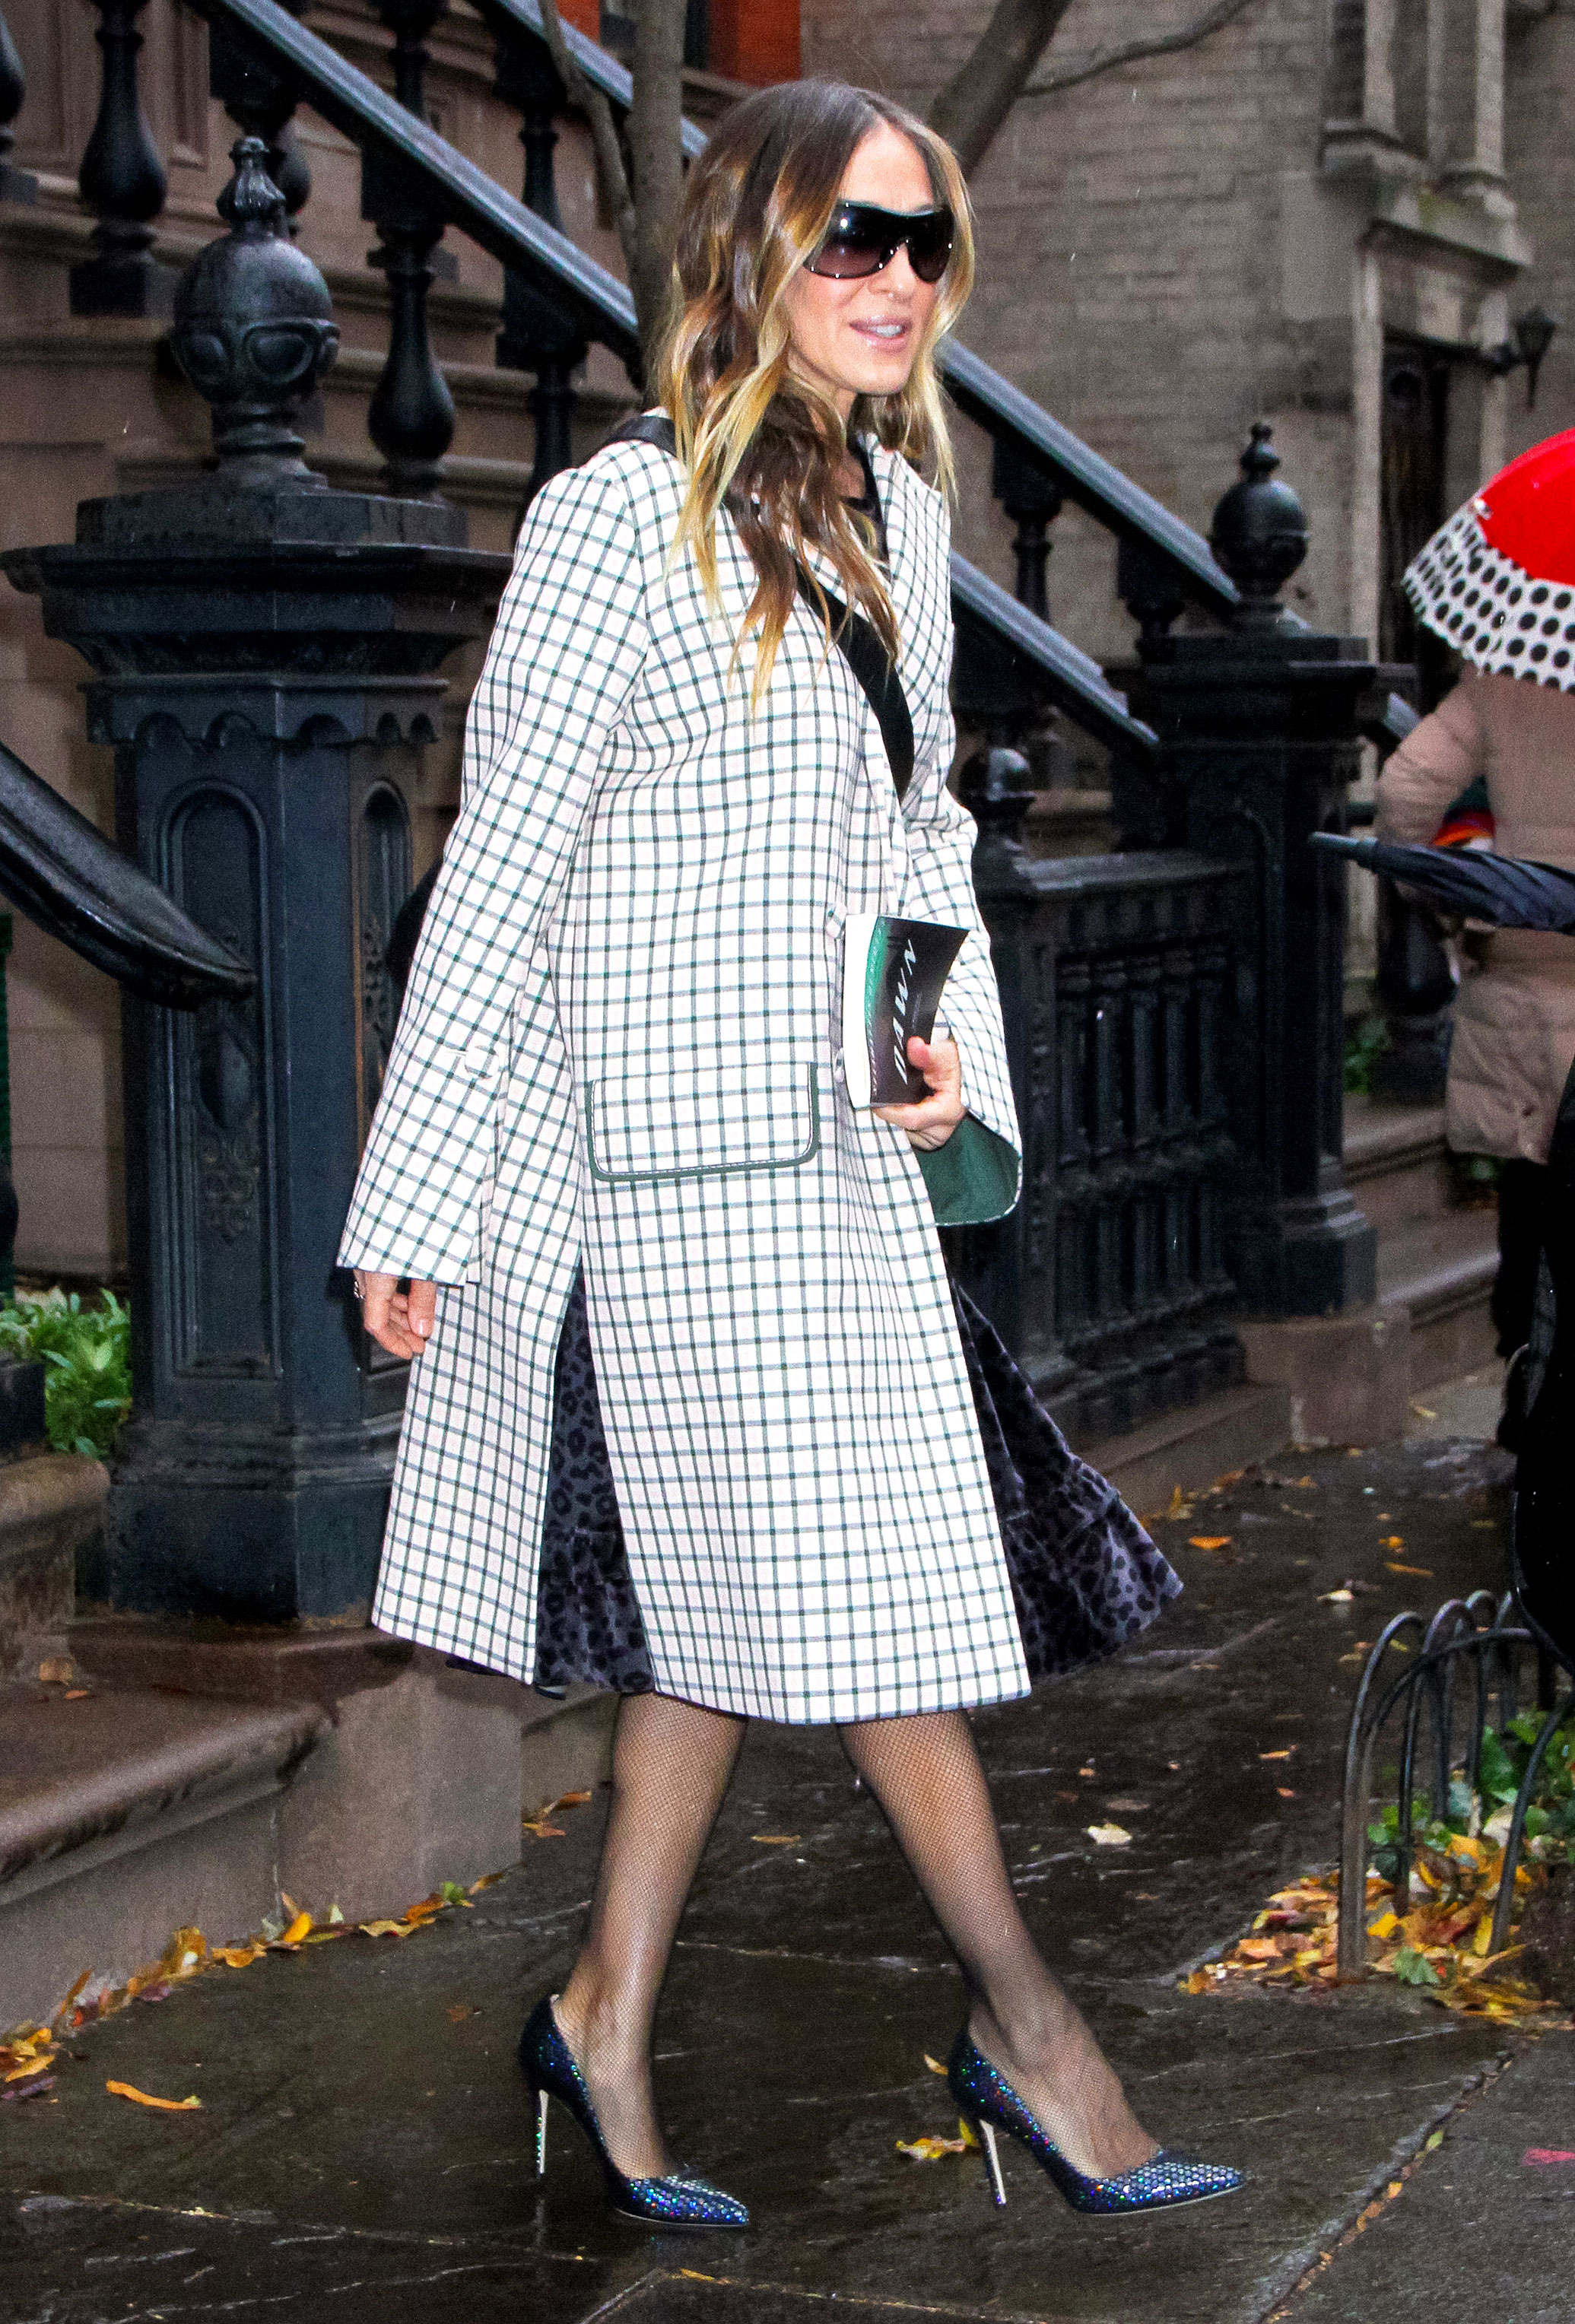 sarah-jessica-parker-checkered-coat - On her way to the Muse Awards in NYC on Thursday, December 13, the actress topped off her velvet black Batsheva frock and sparkly pumps with a grey and white check coat that Carrie Bradshaw would approve of.